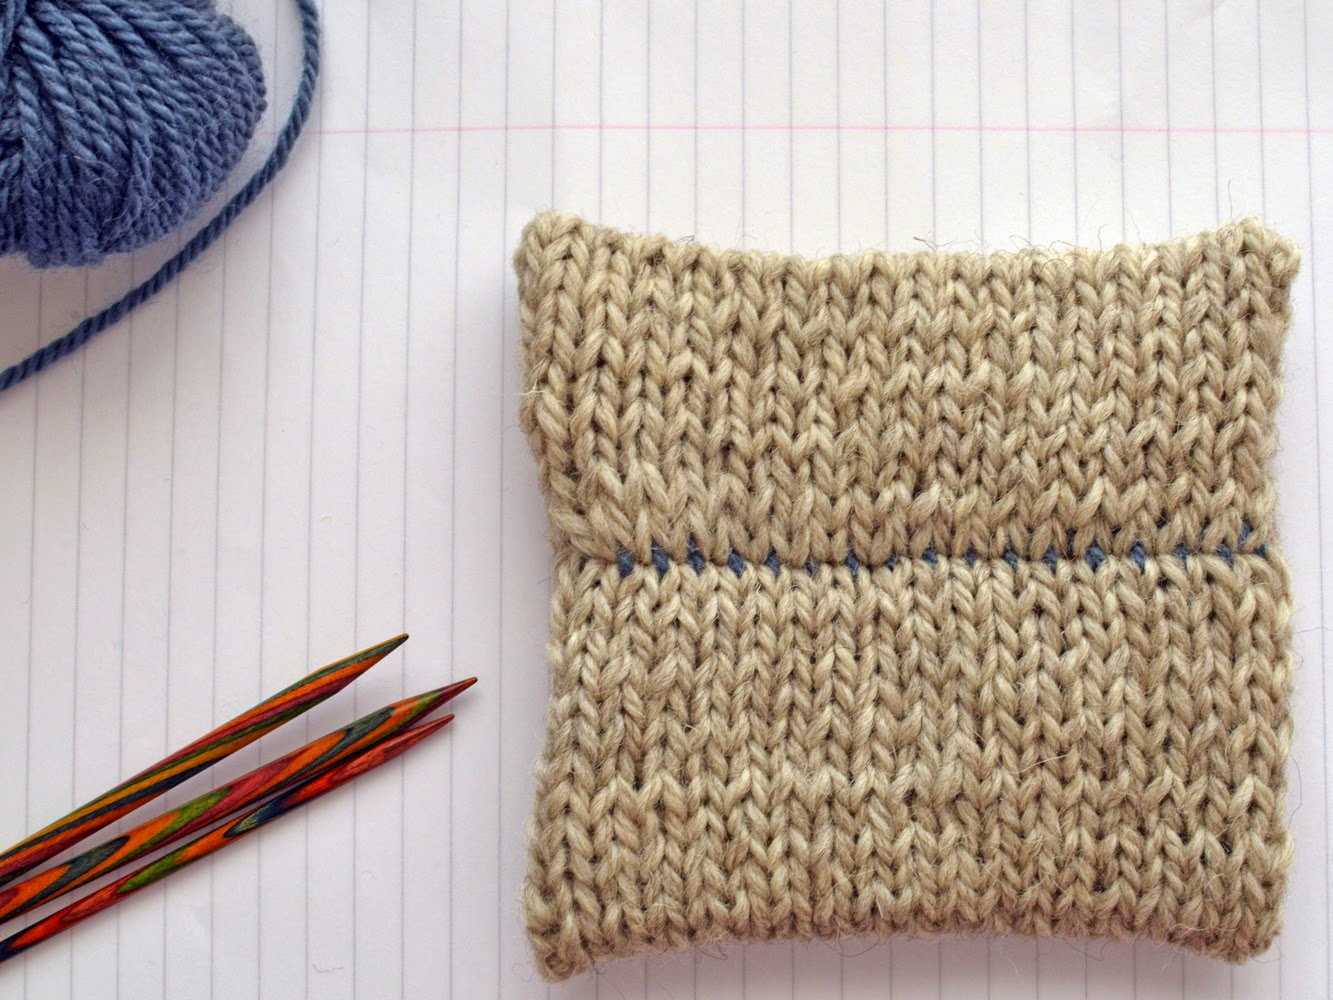 How to: 3-needle bind off